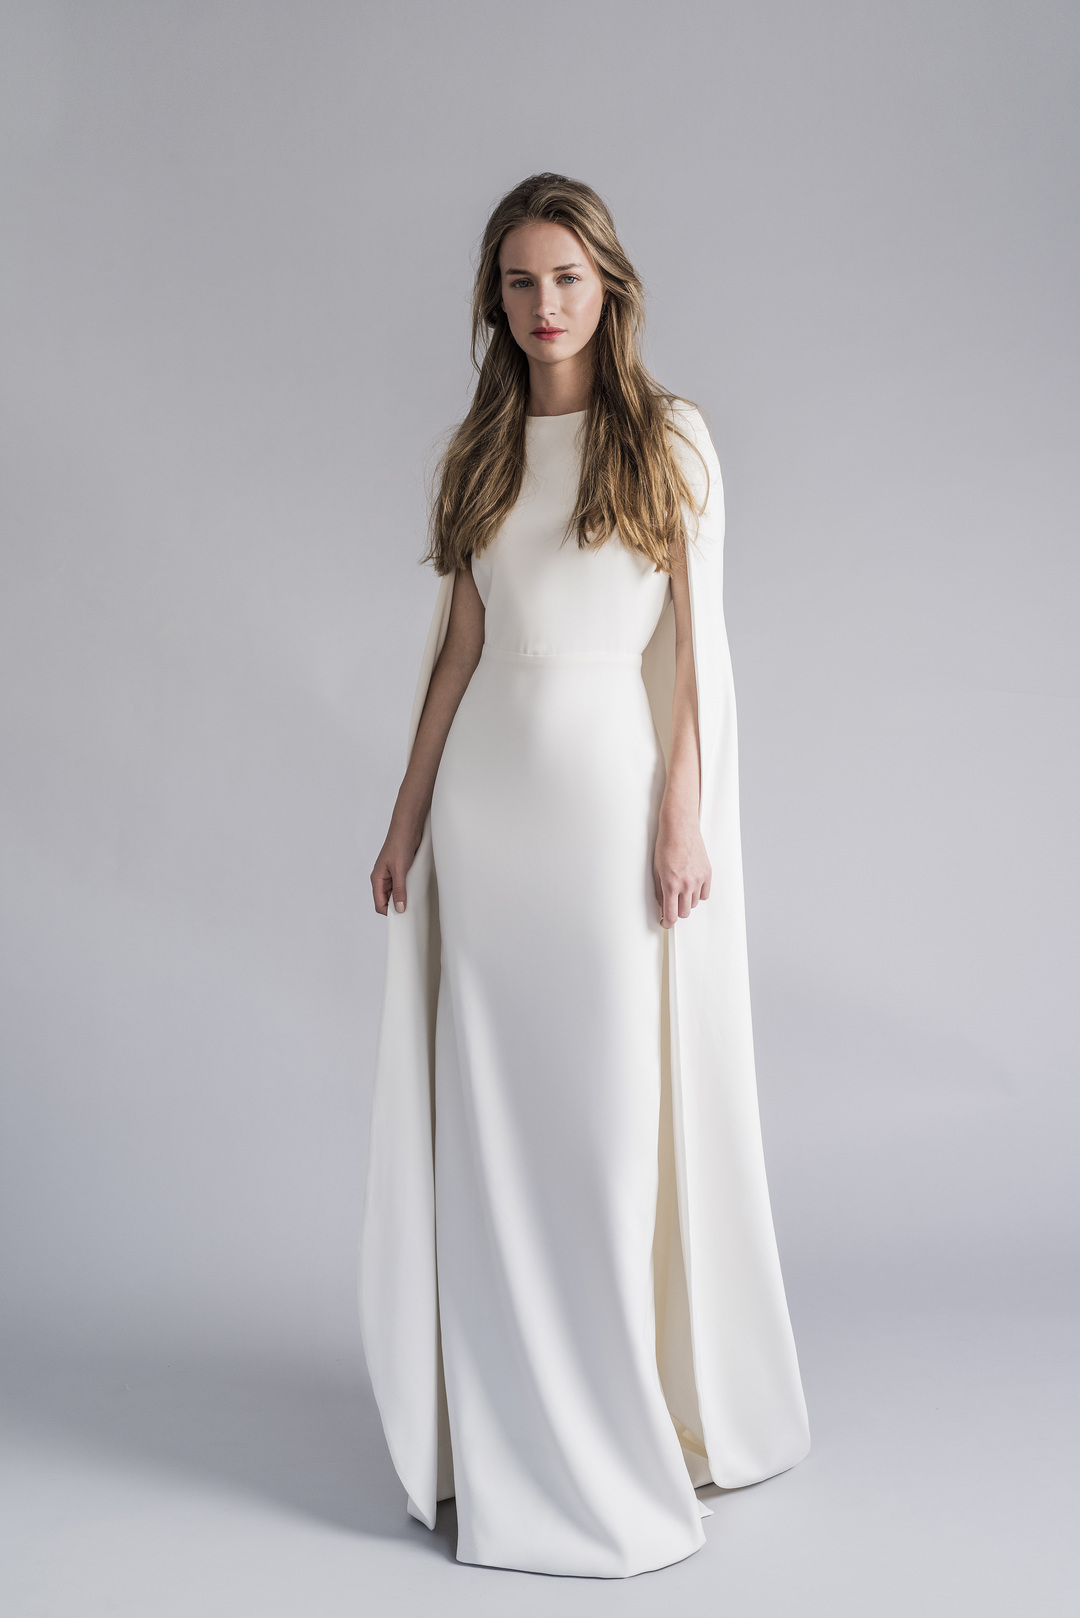 blanche dress photo